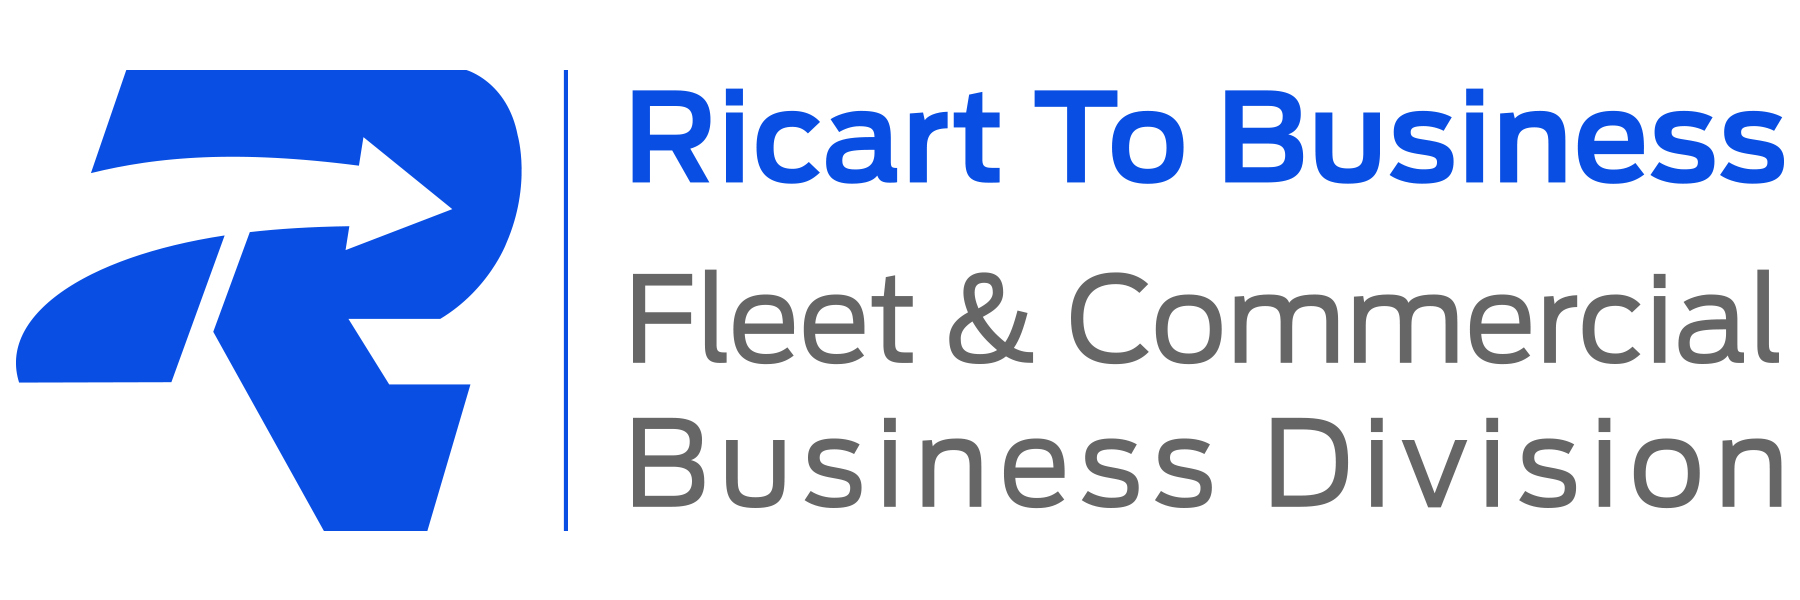 Ricart to Business in Groveport OH